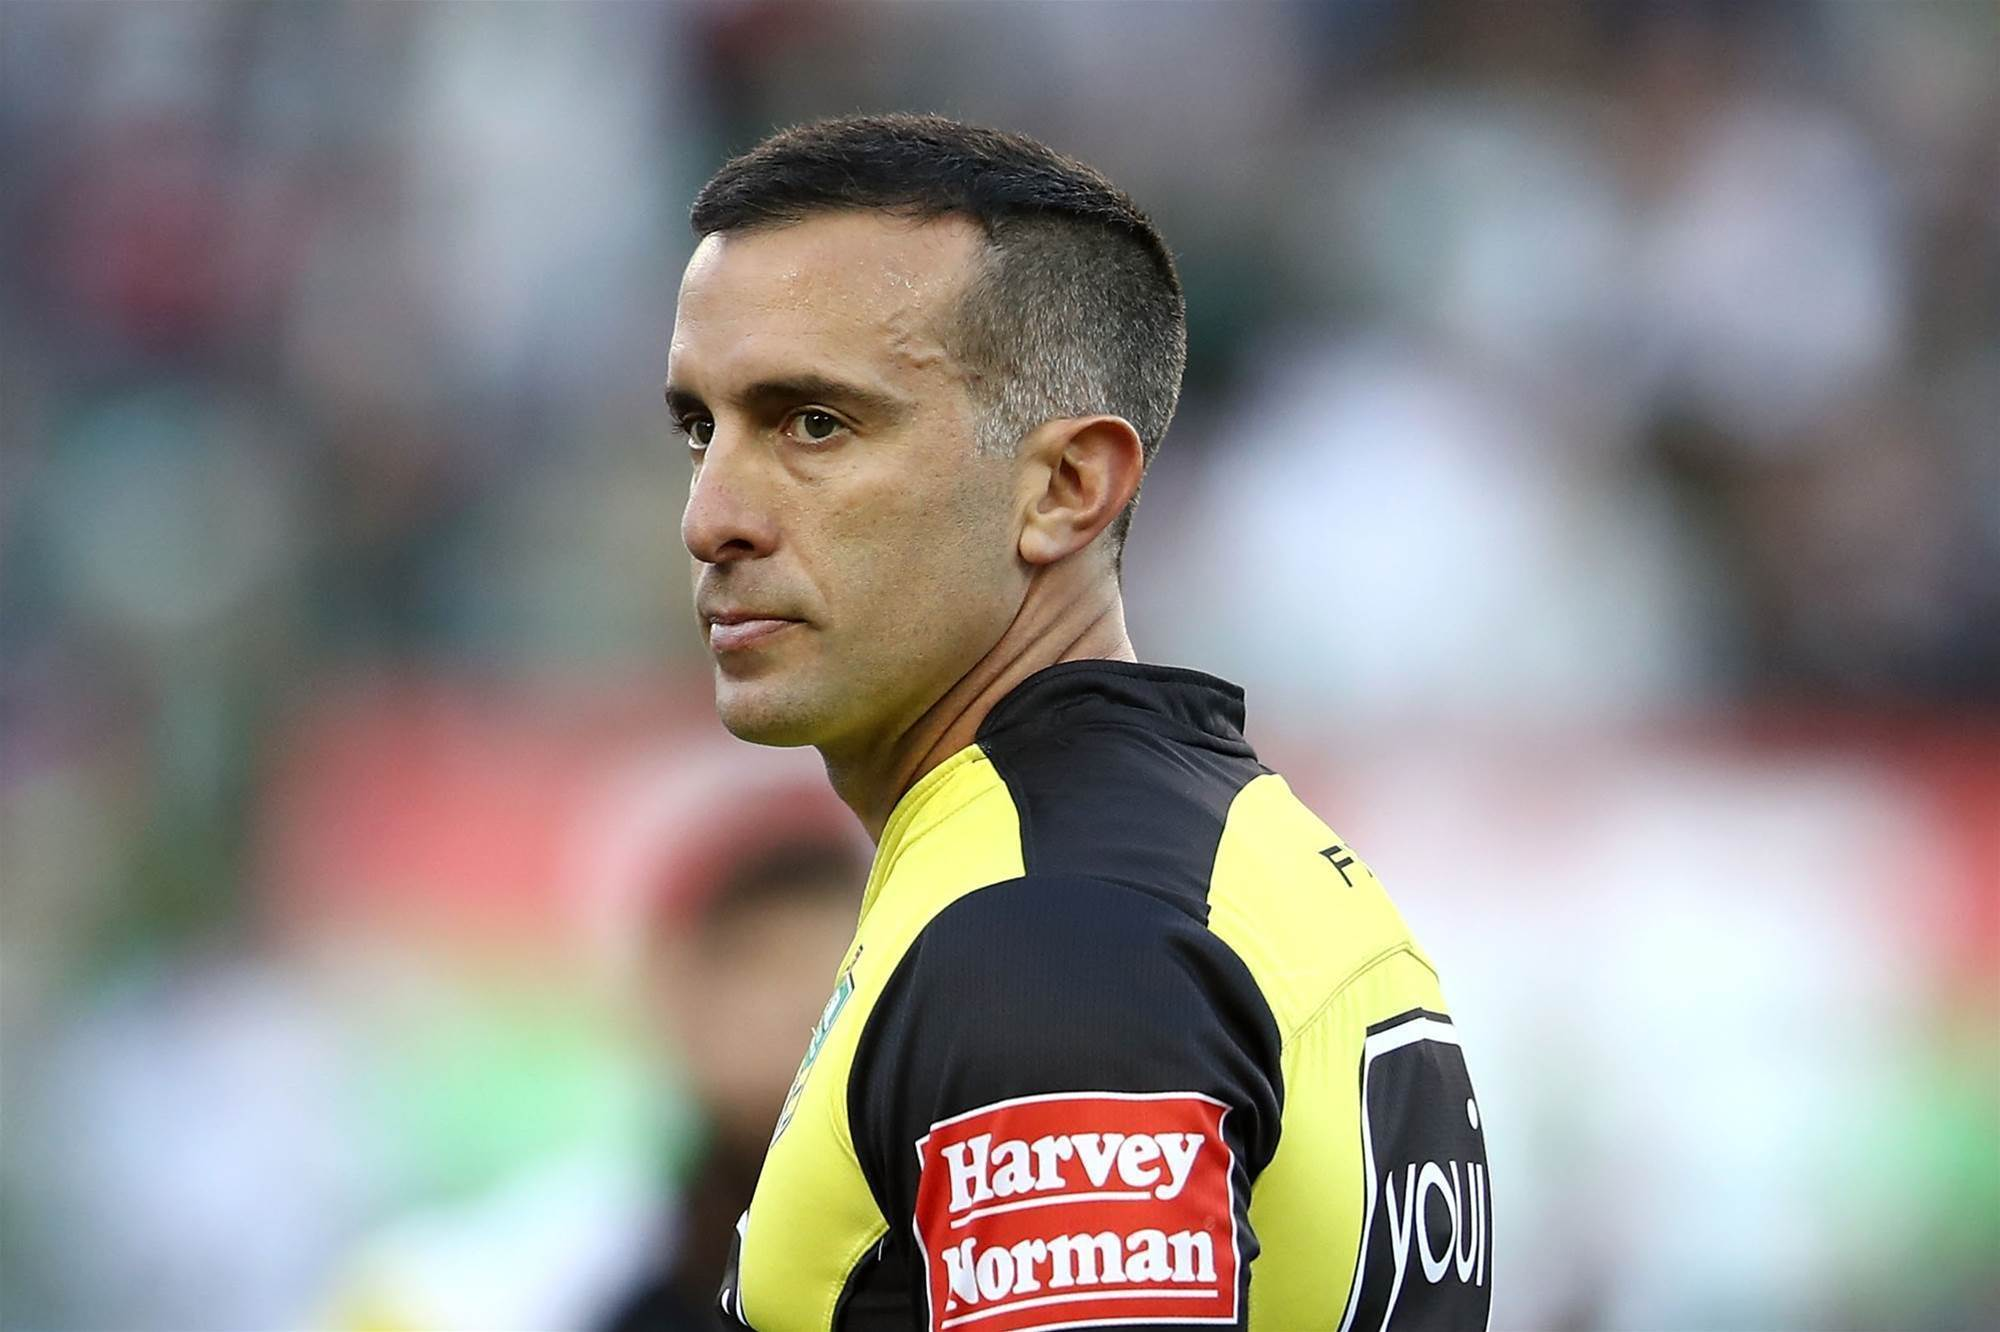 World Cup ref accused of racism